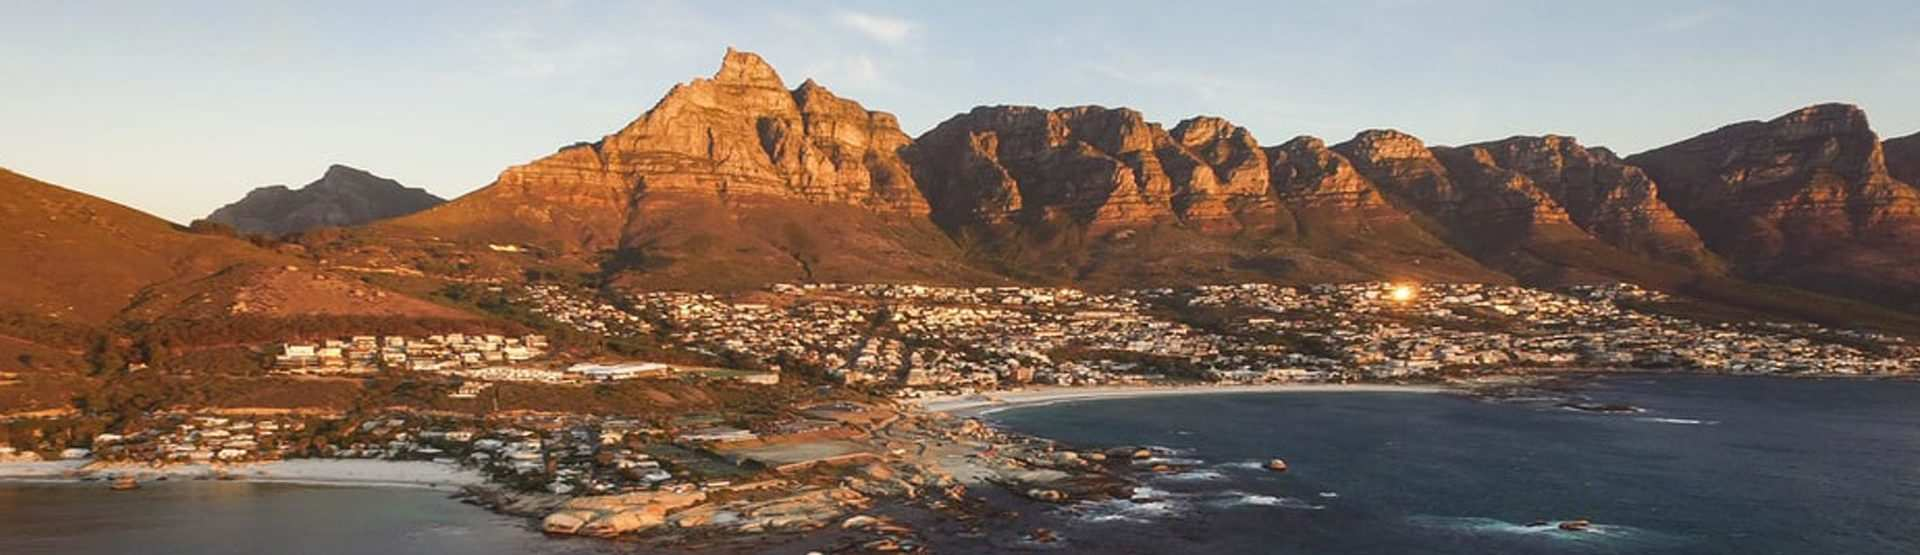 The Three Boutique Hotel  Cape Town  Luxury Accommodation  Lion Roars Hotels And Lodges About Cape Town